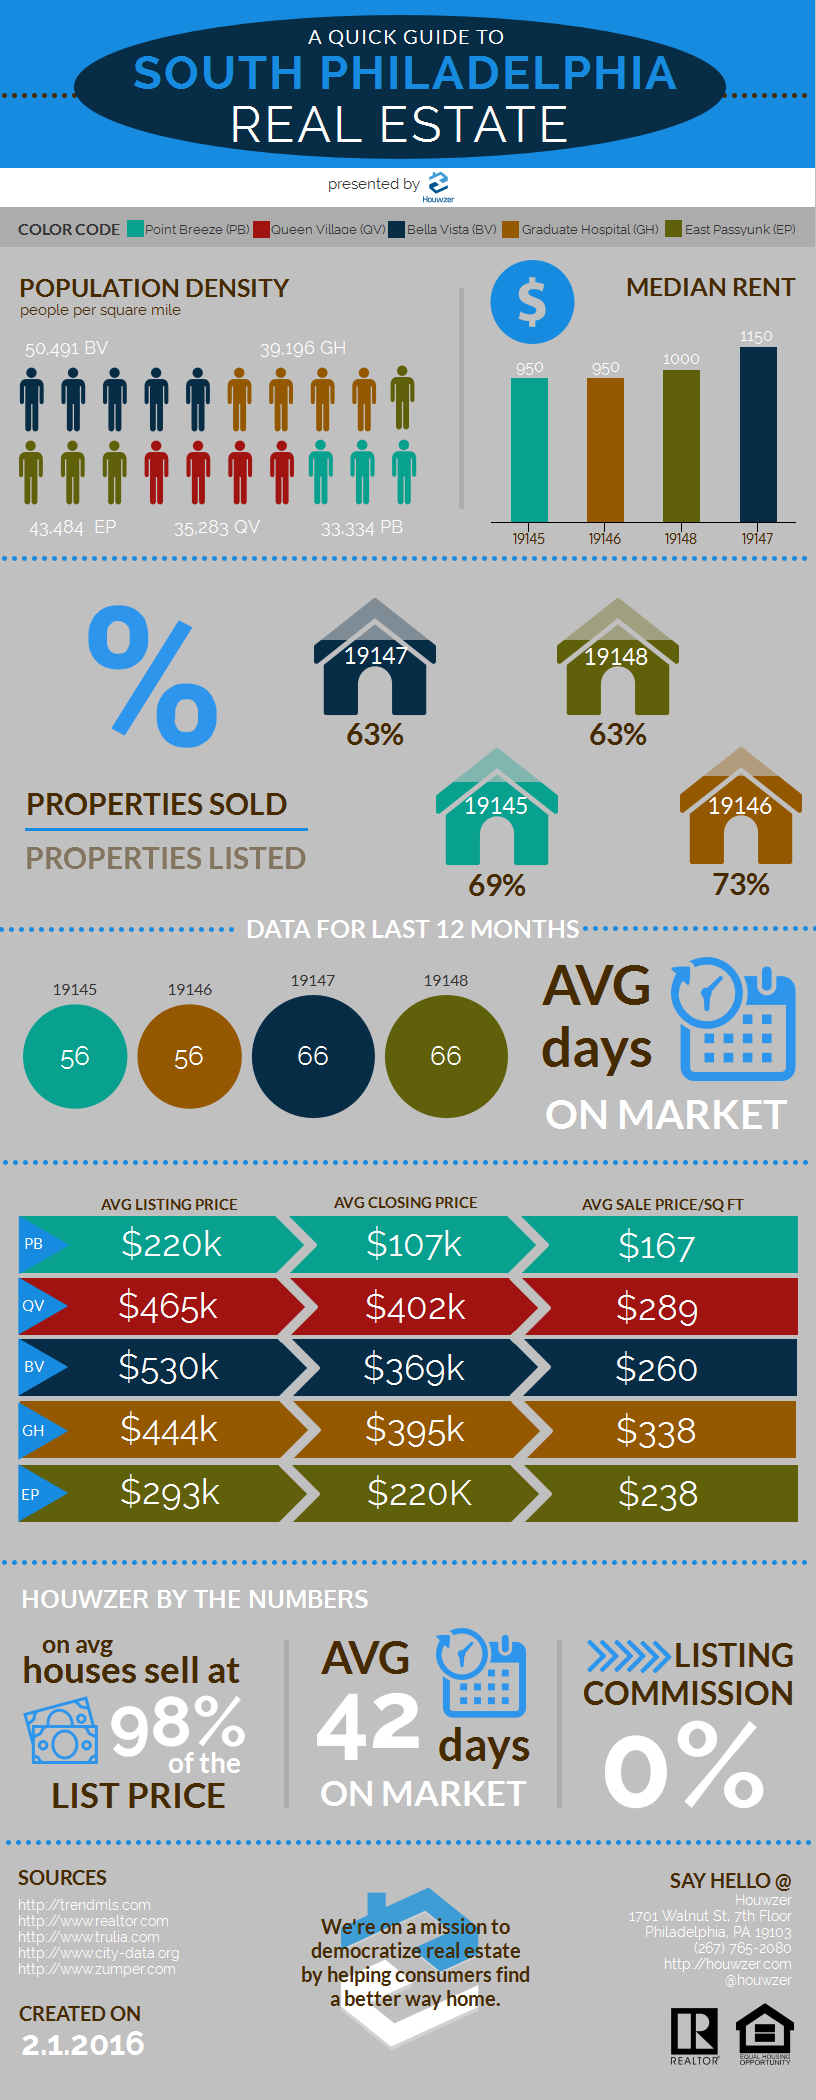 South Philly Real Estate infographic. Population, median rent, days on market, sold vs. listed properties, average list price.